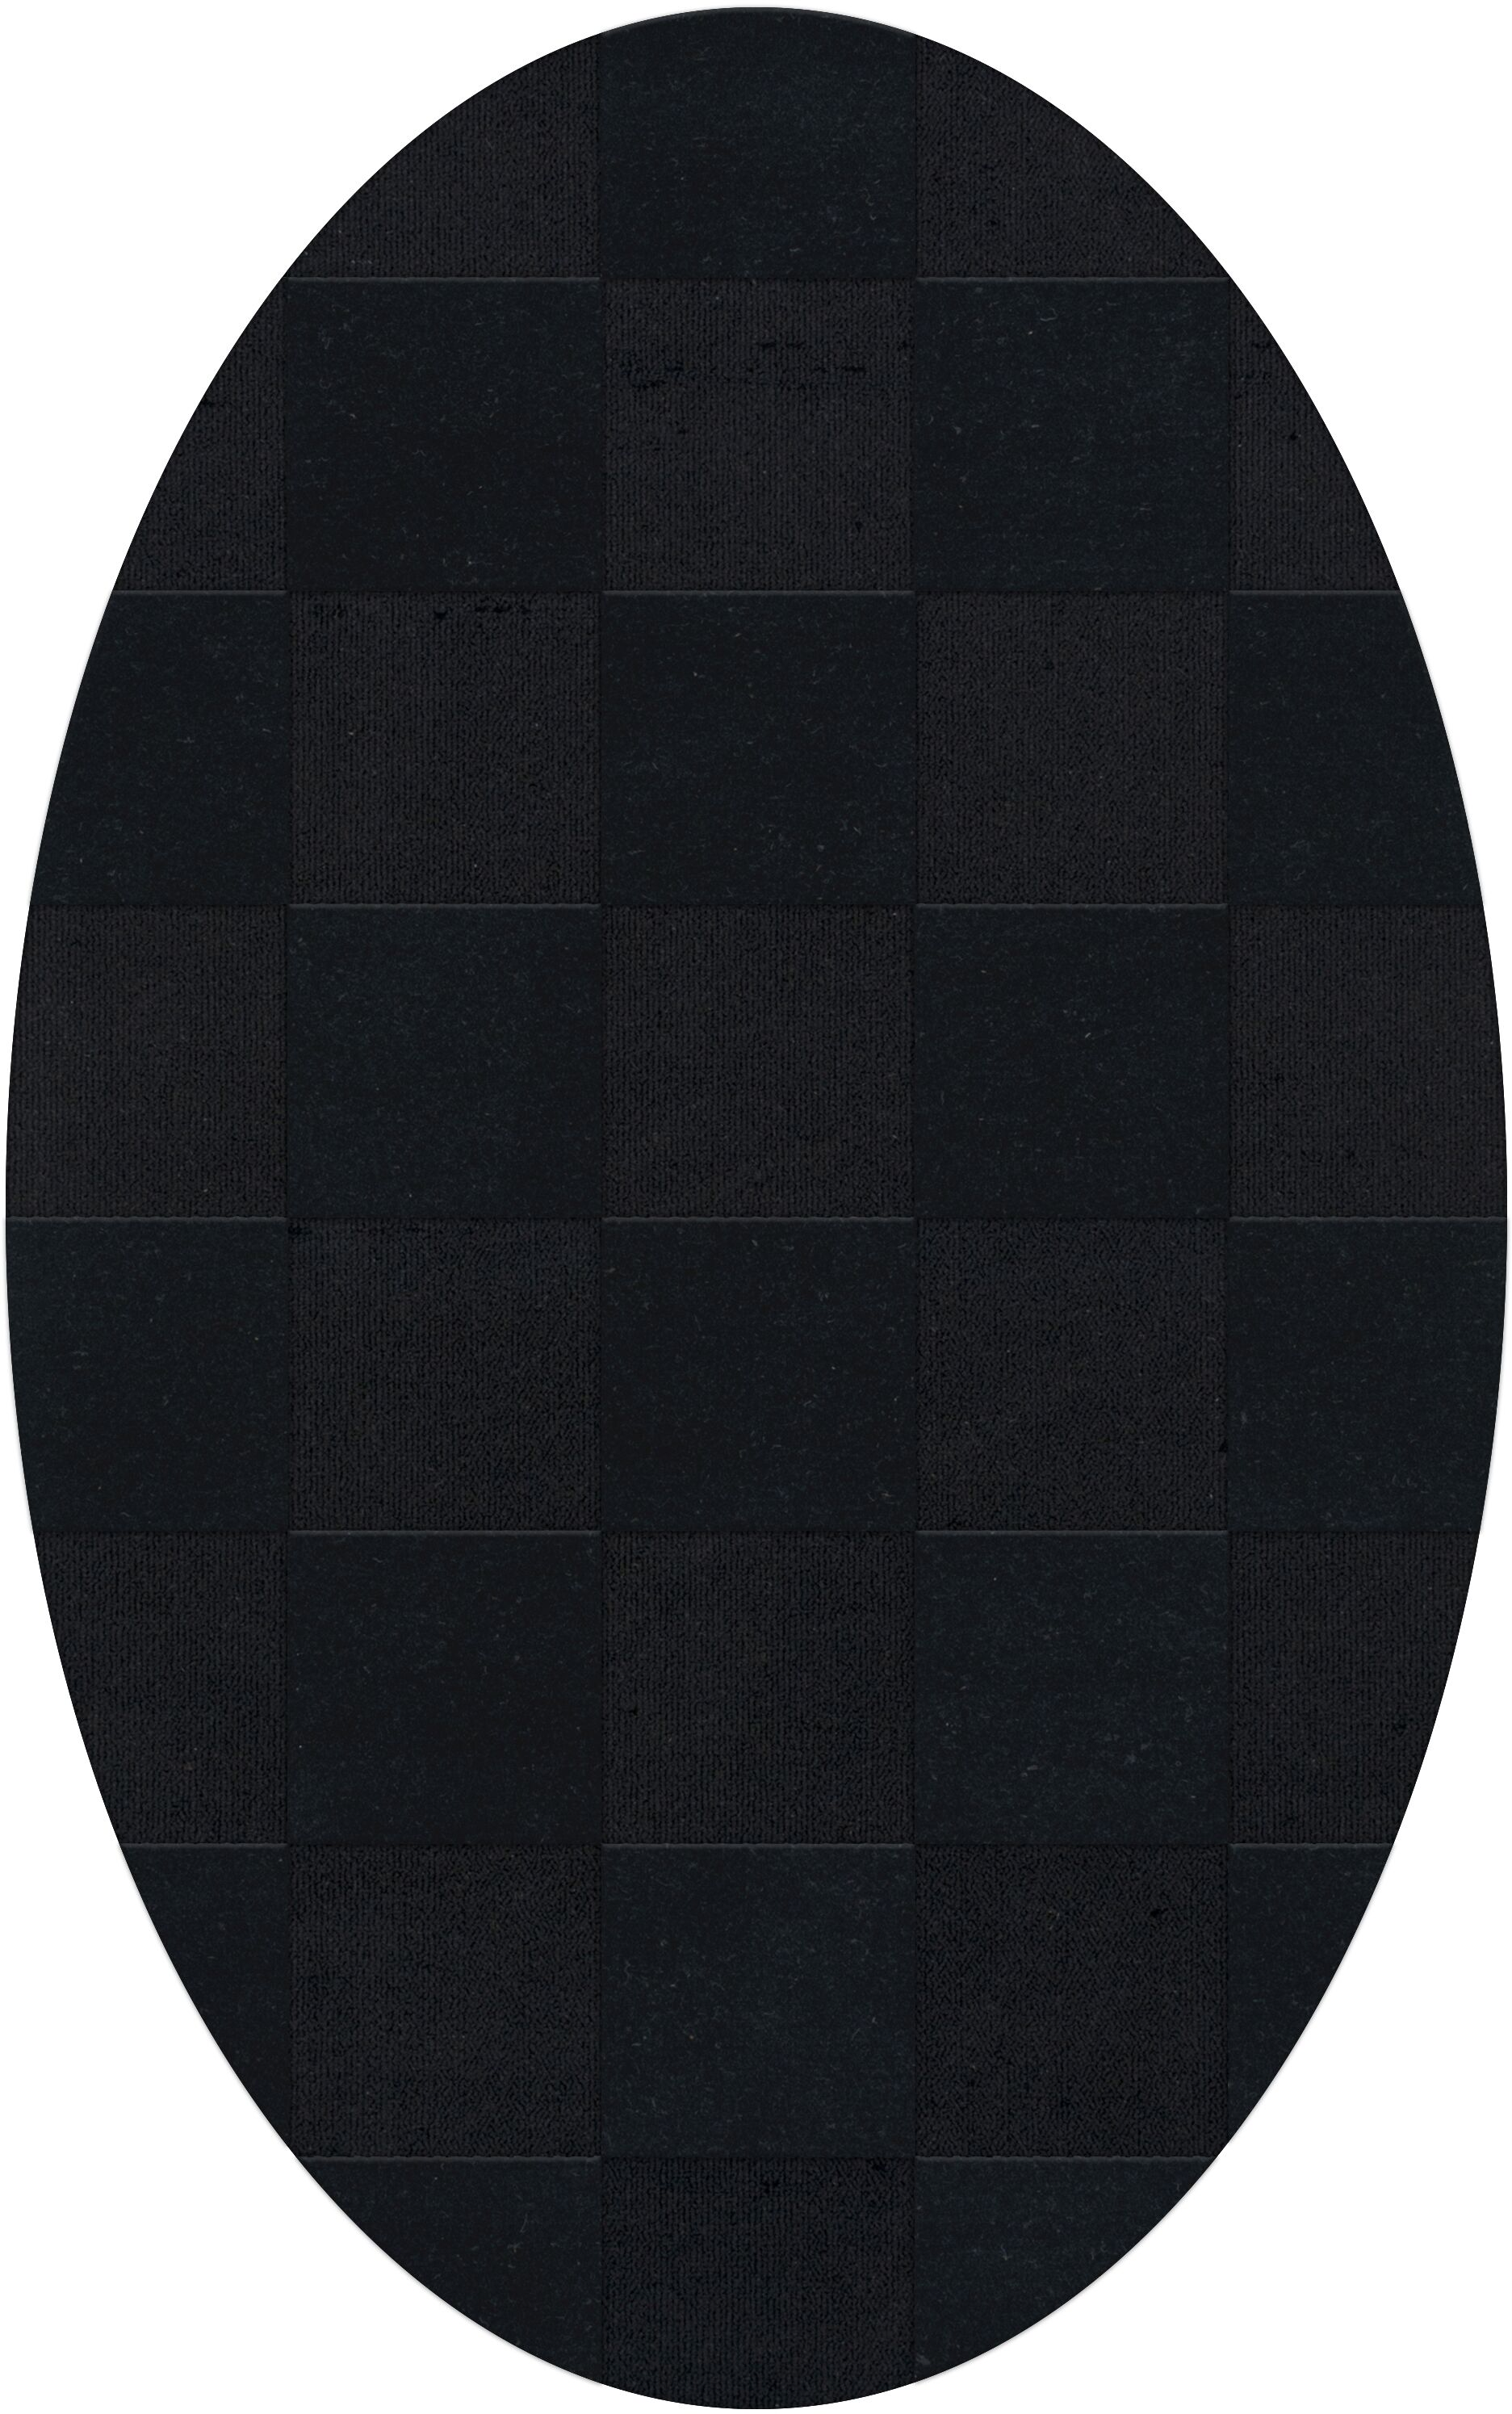 Dover Tufted Wool Black Area Rug Rug Size: Oval 8' x 10'